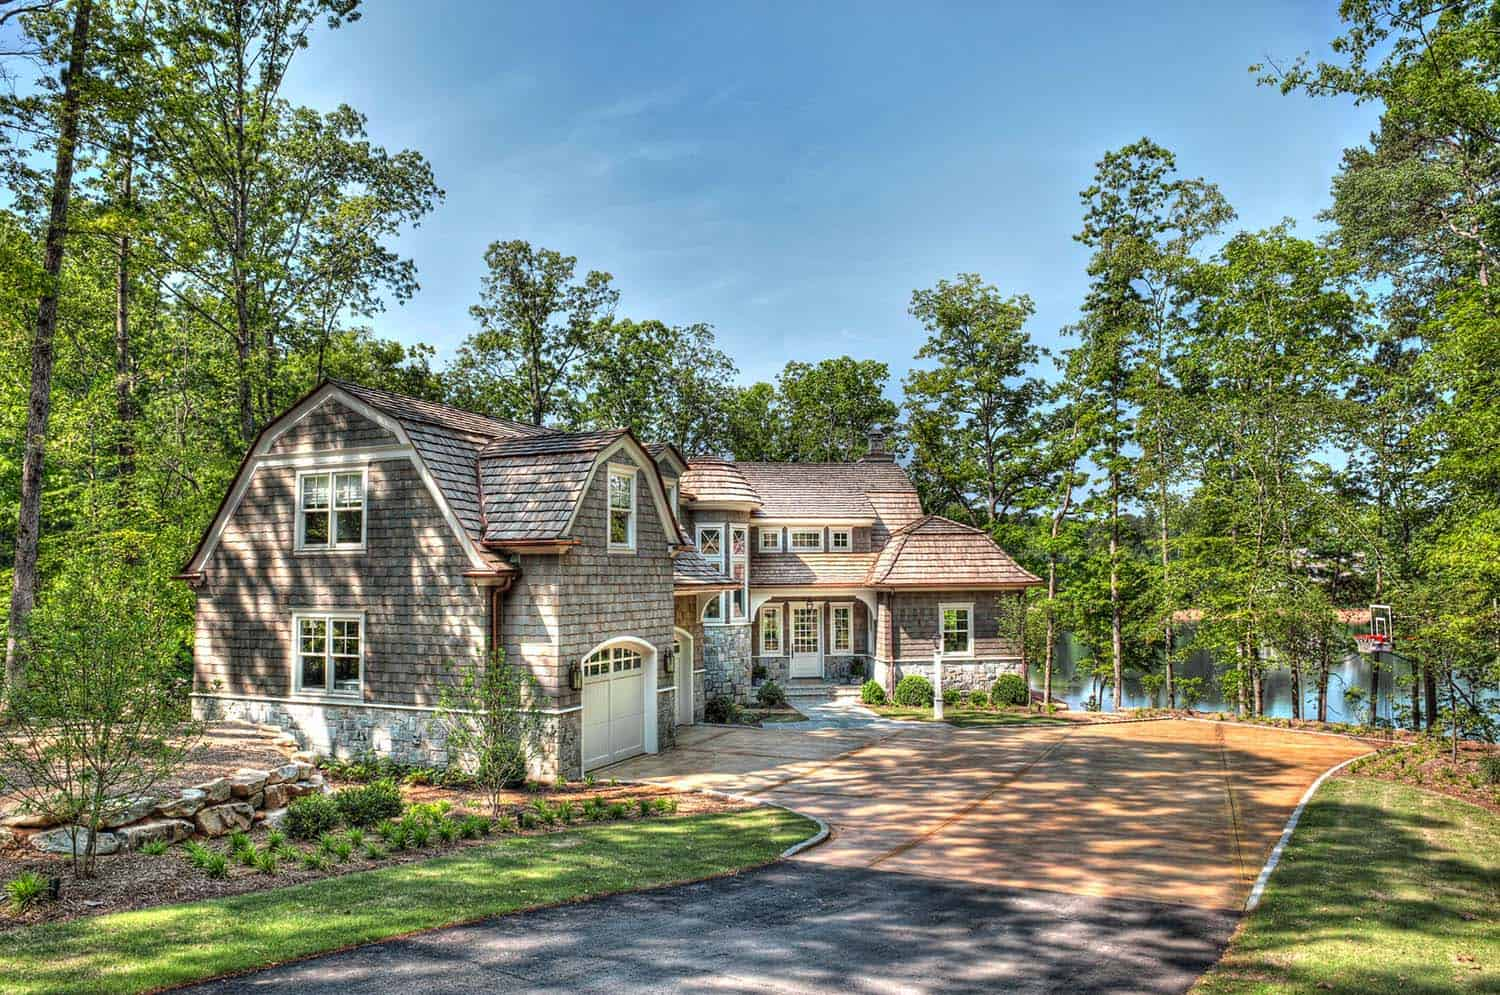 Charming Shingle Style Cottage On Lake Keowee South Carolina